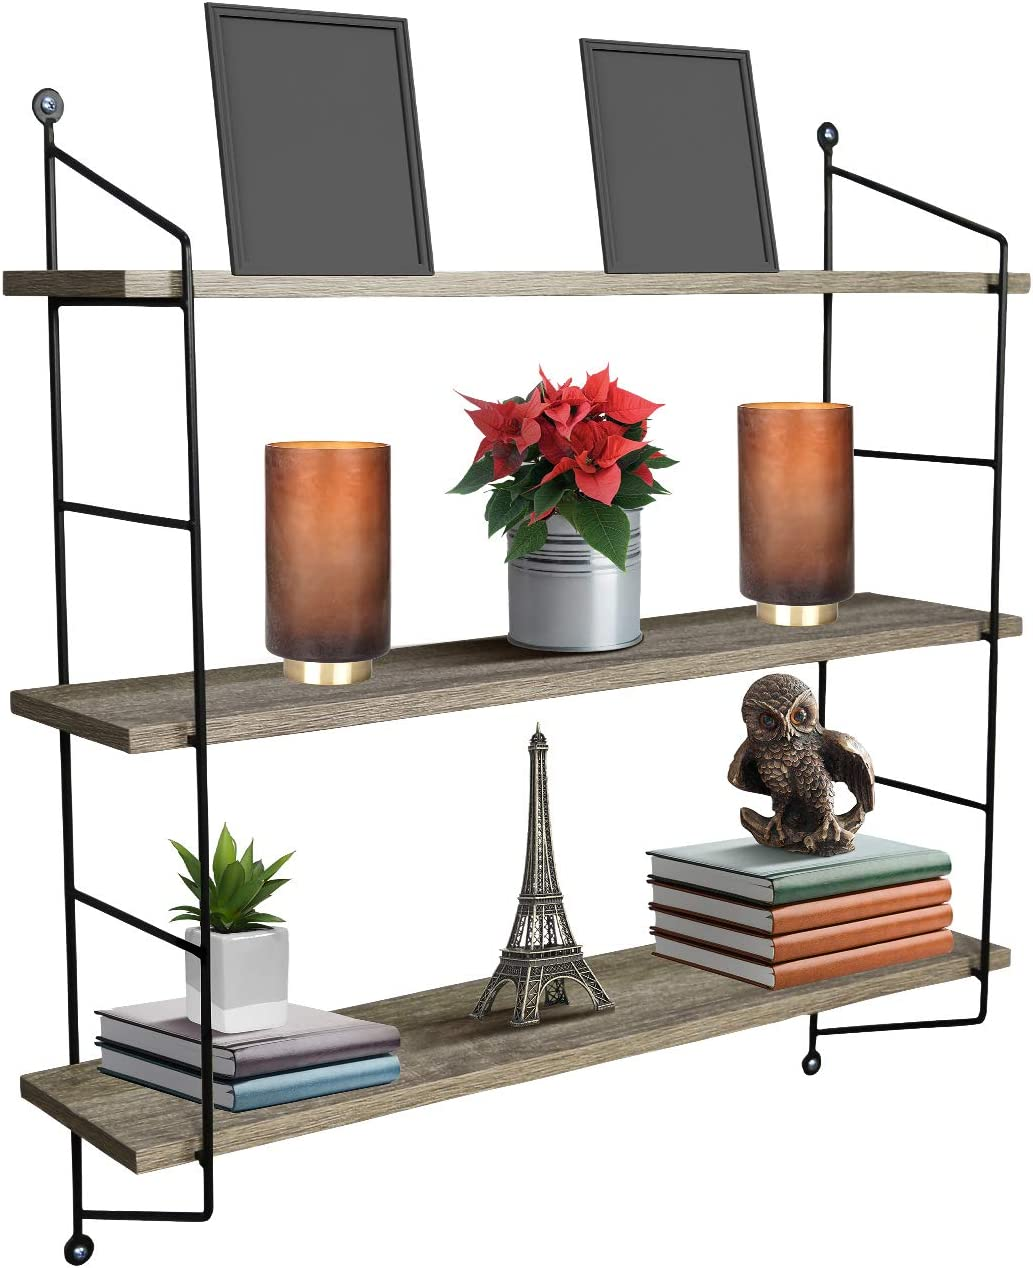 Sorbus Floating Shelf with Metal Brackets Wall Mounted Rustic Wood Wall Storage, Decorative Hanging Display for Trophy, Photo Frames, Collectibles, and Much More 3-Tier Grey